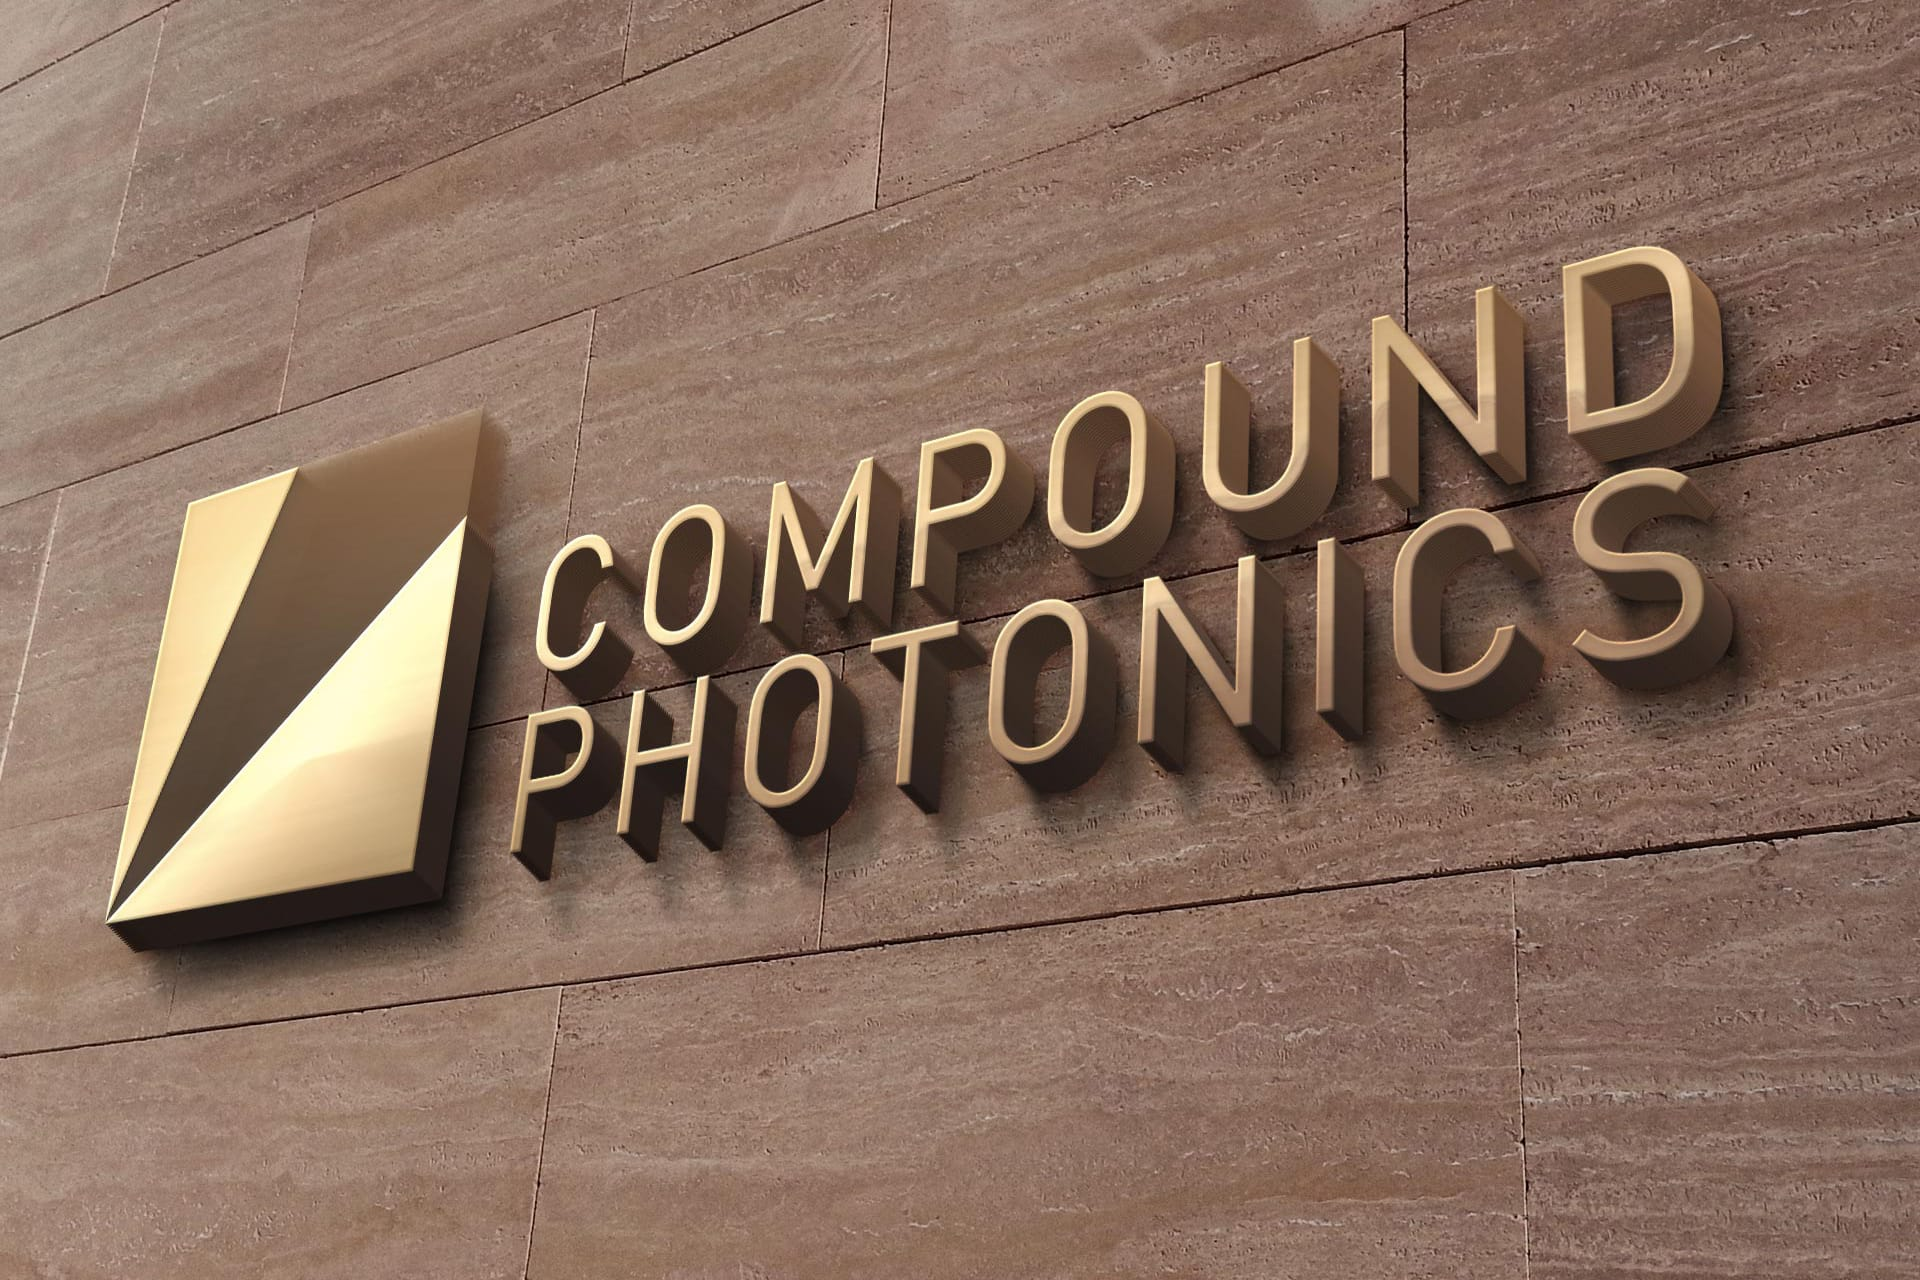 Compound Photonics: Branding & Website - Signage